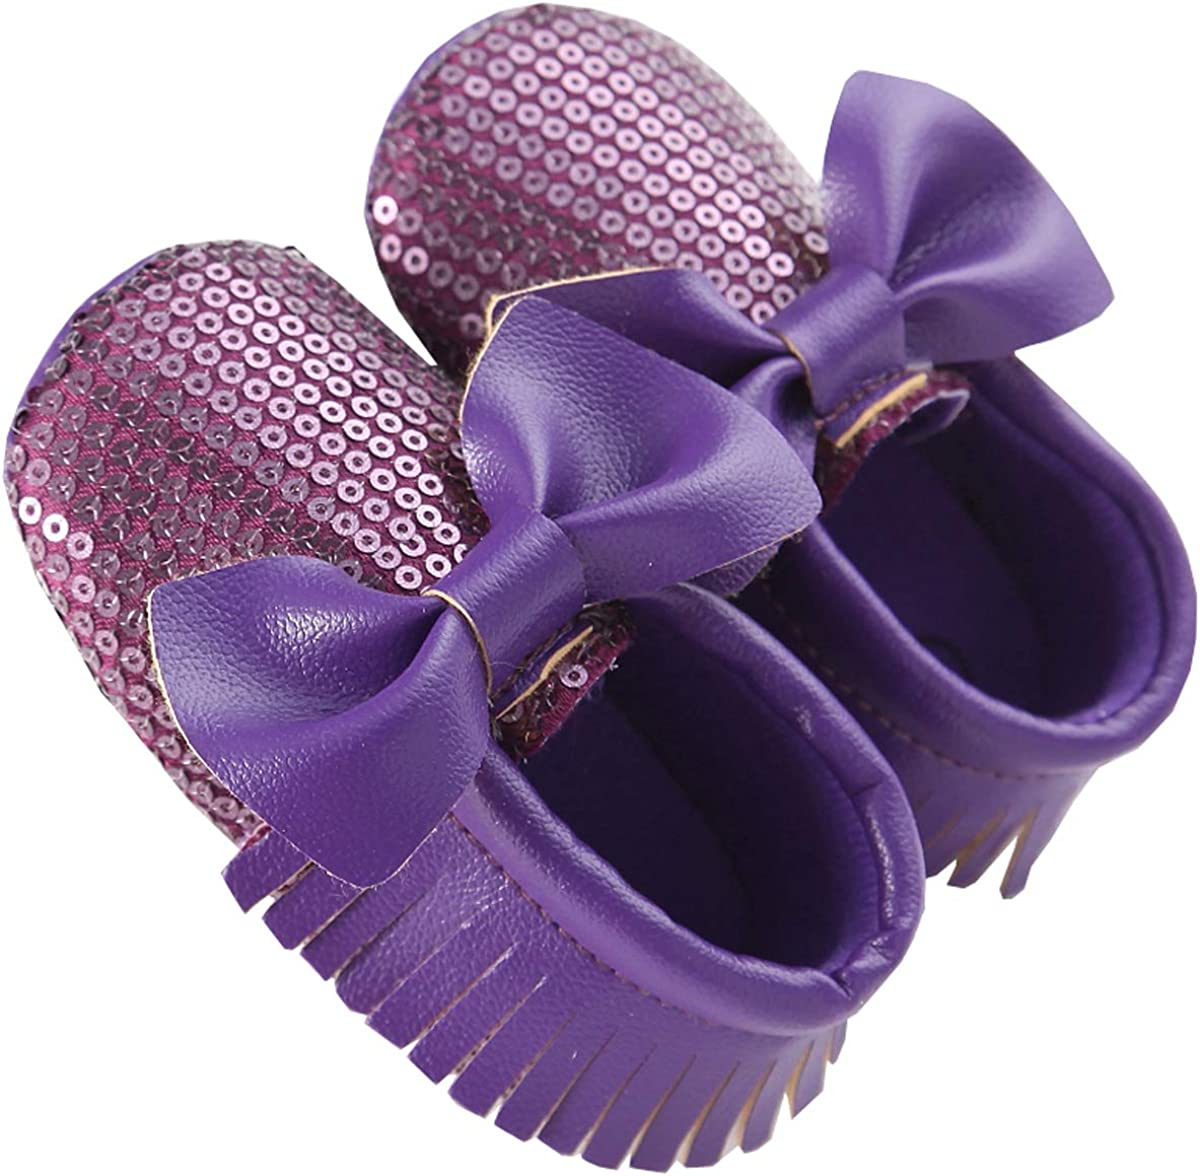 Infant Toddler Baby Soft Sole Tassel Bowknot Moccasin Crib Sequins Shoes